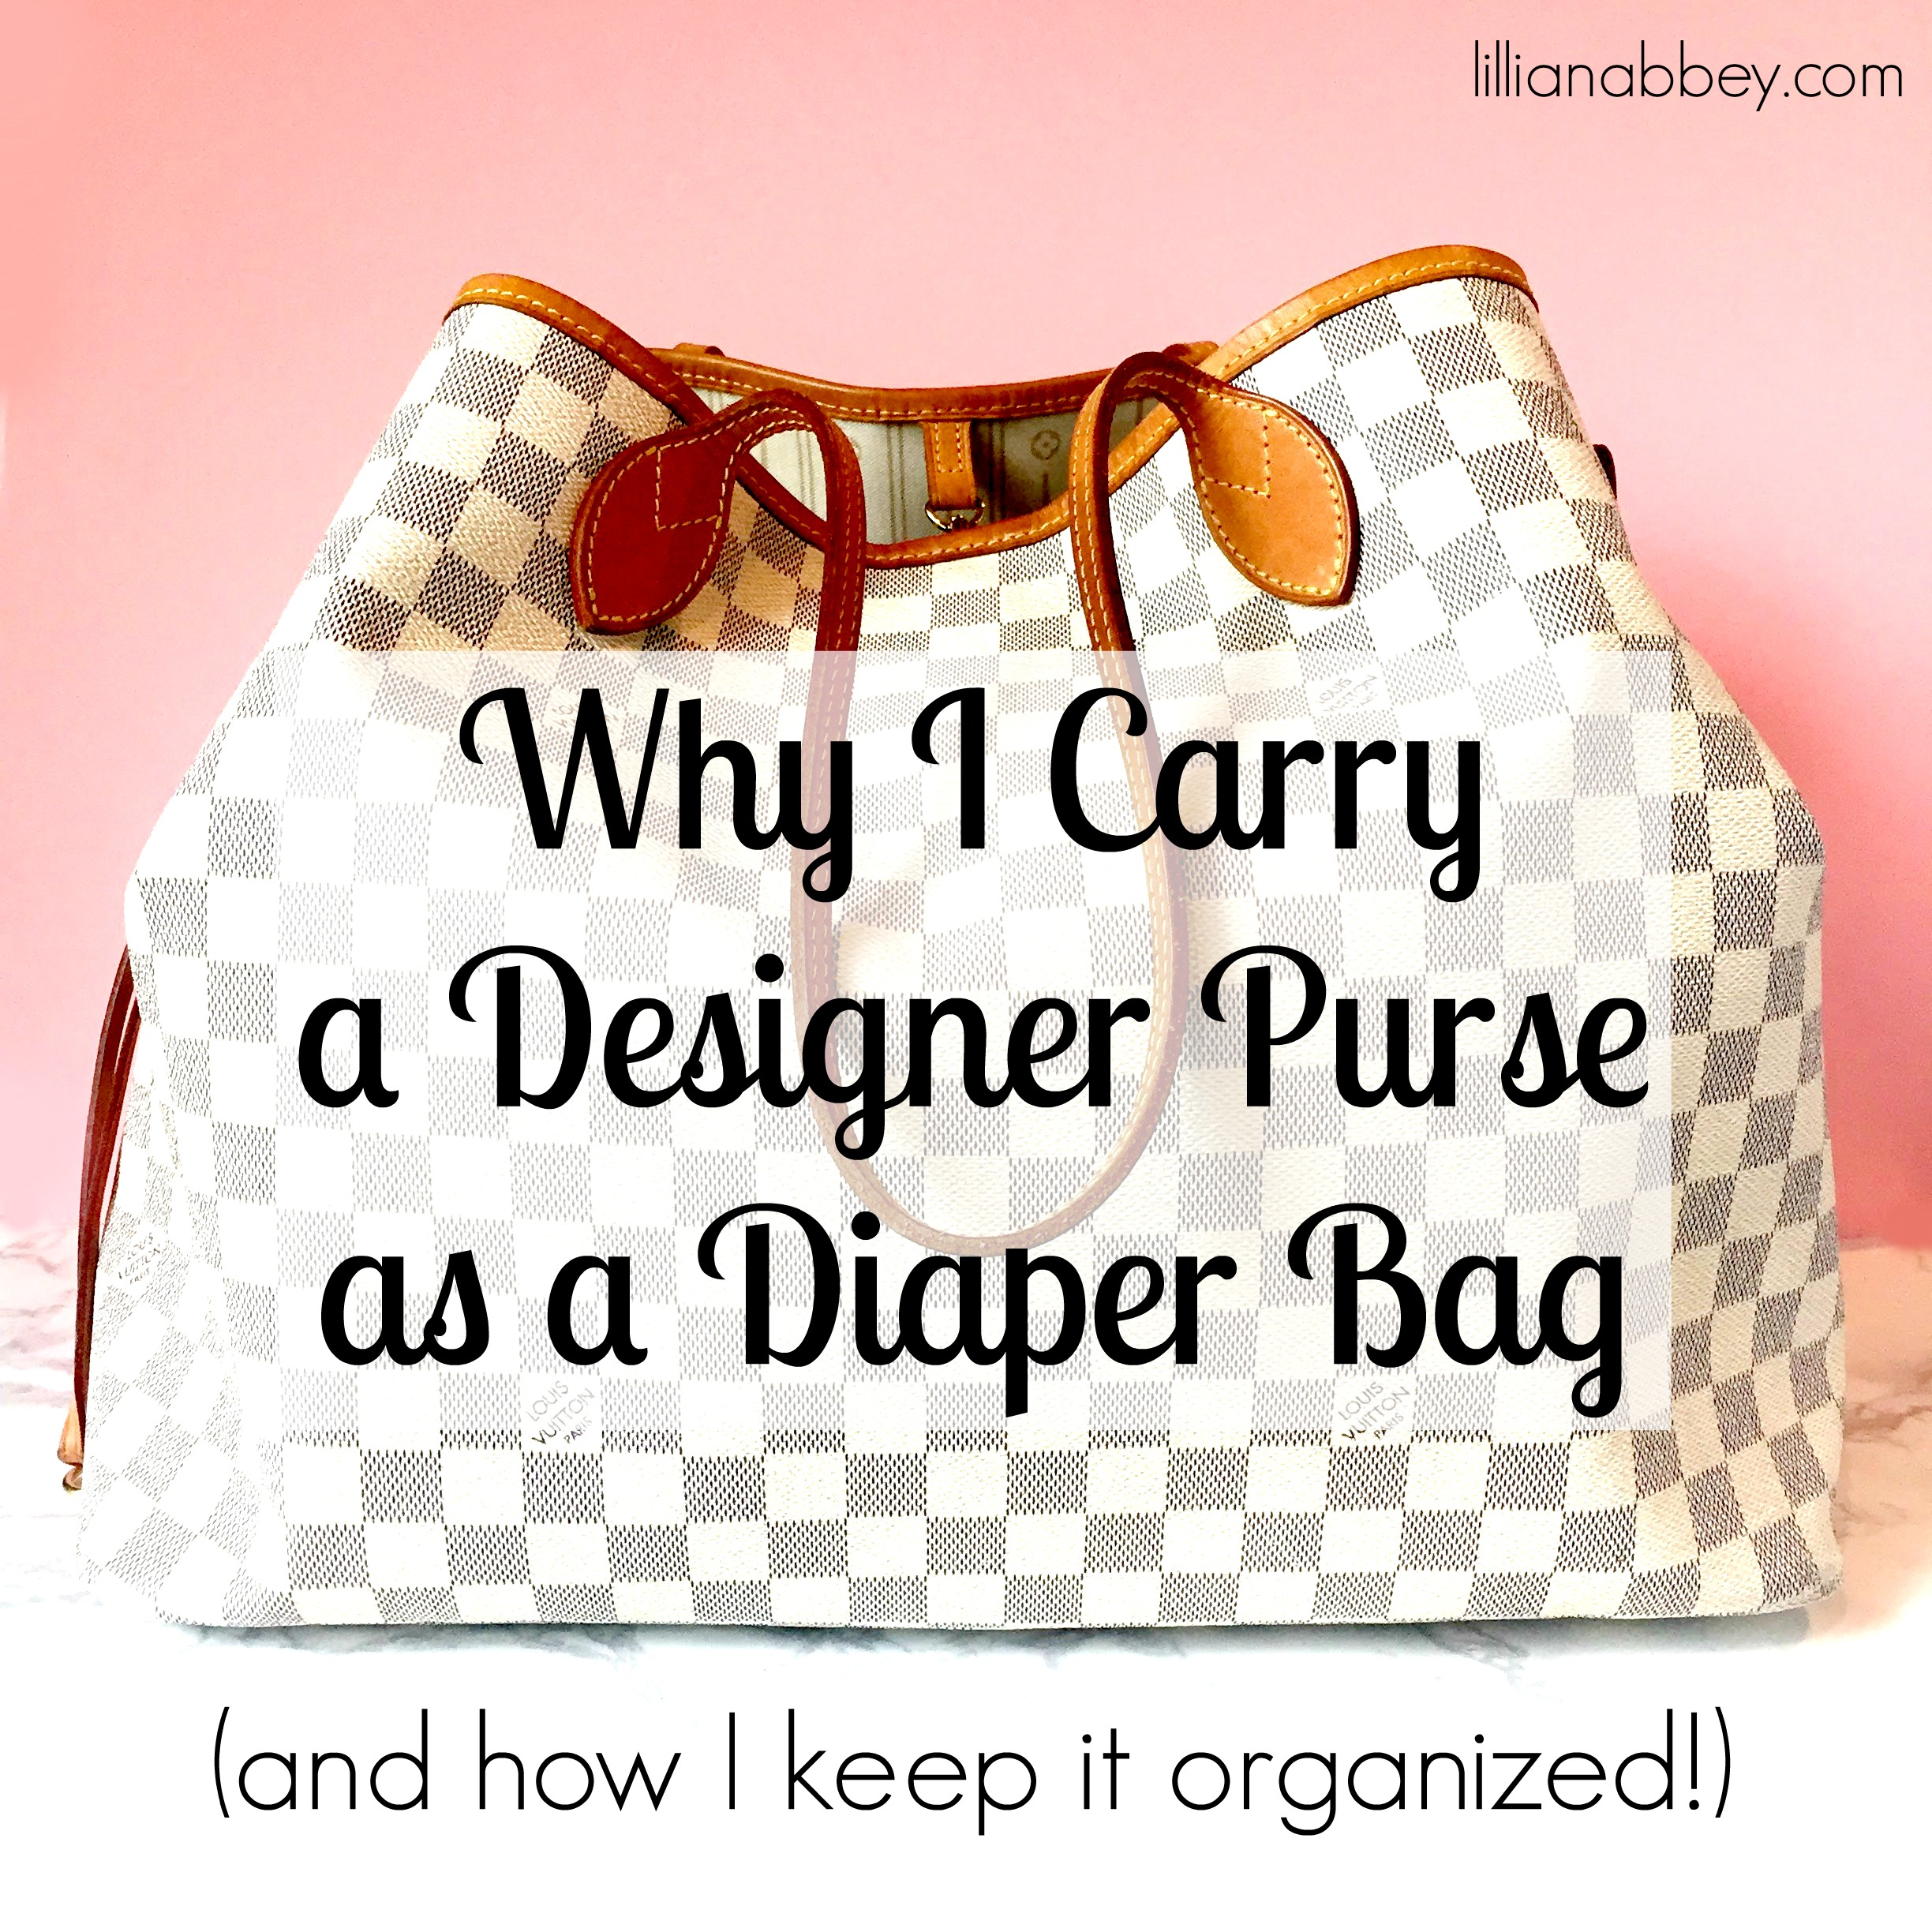 Why I Carry a Designer Purse as a Diaper Bag (and how I keep it organized)